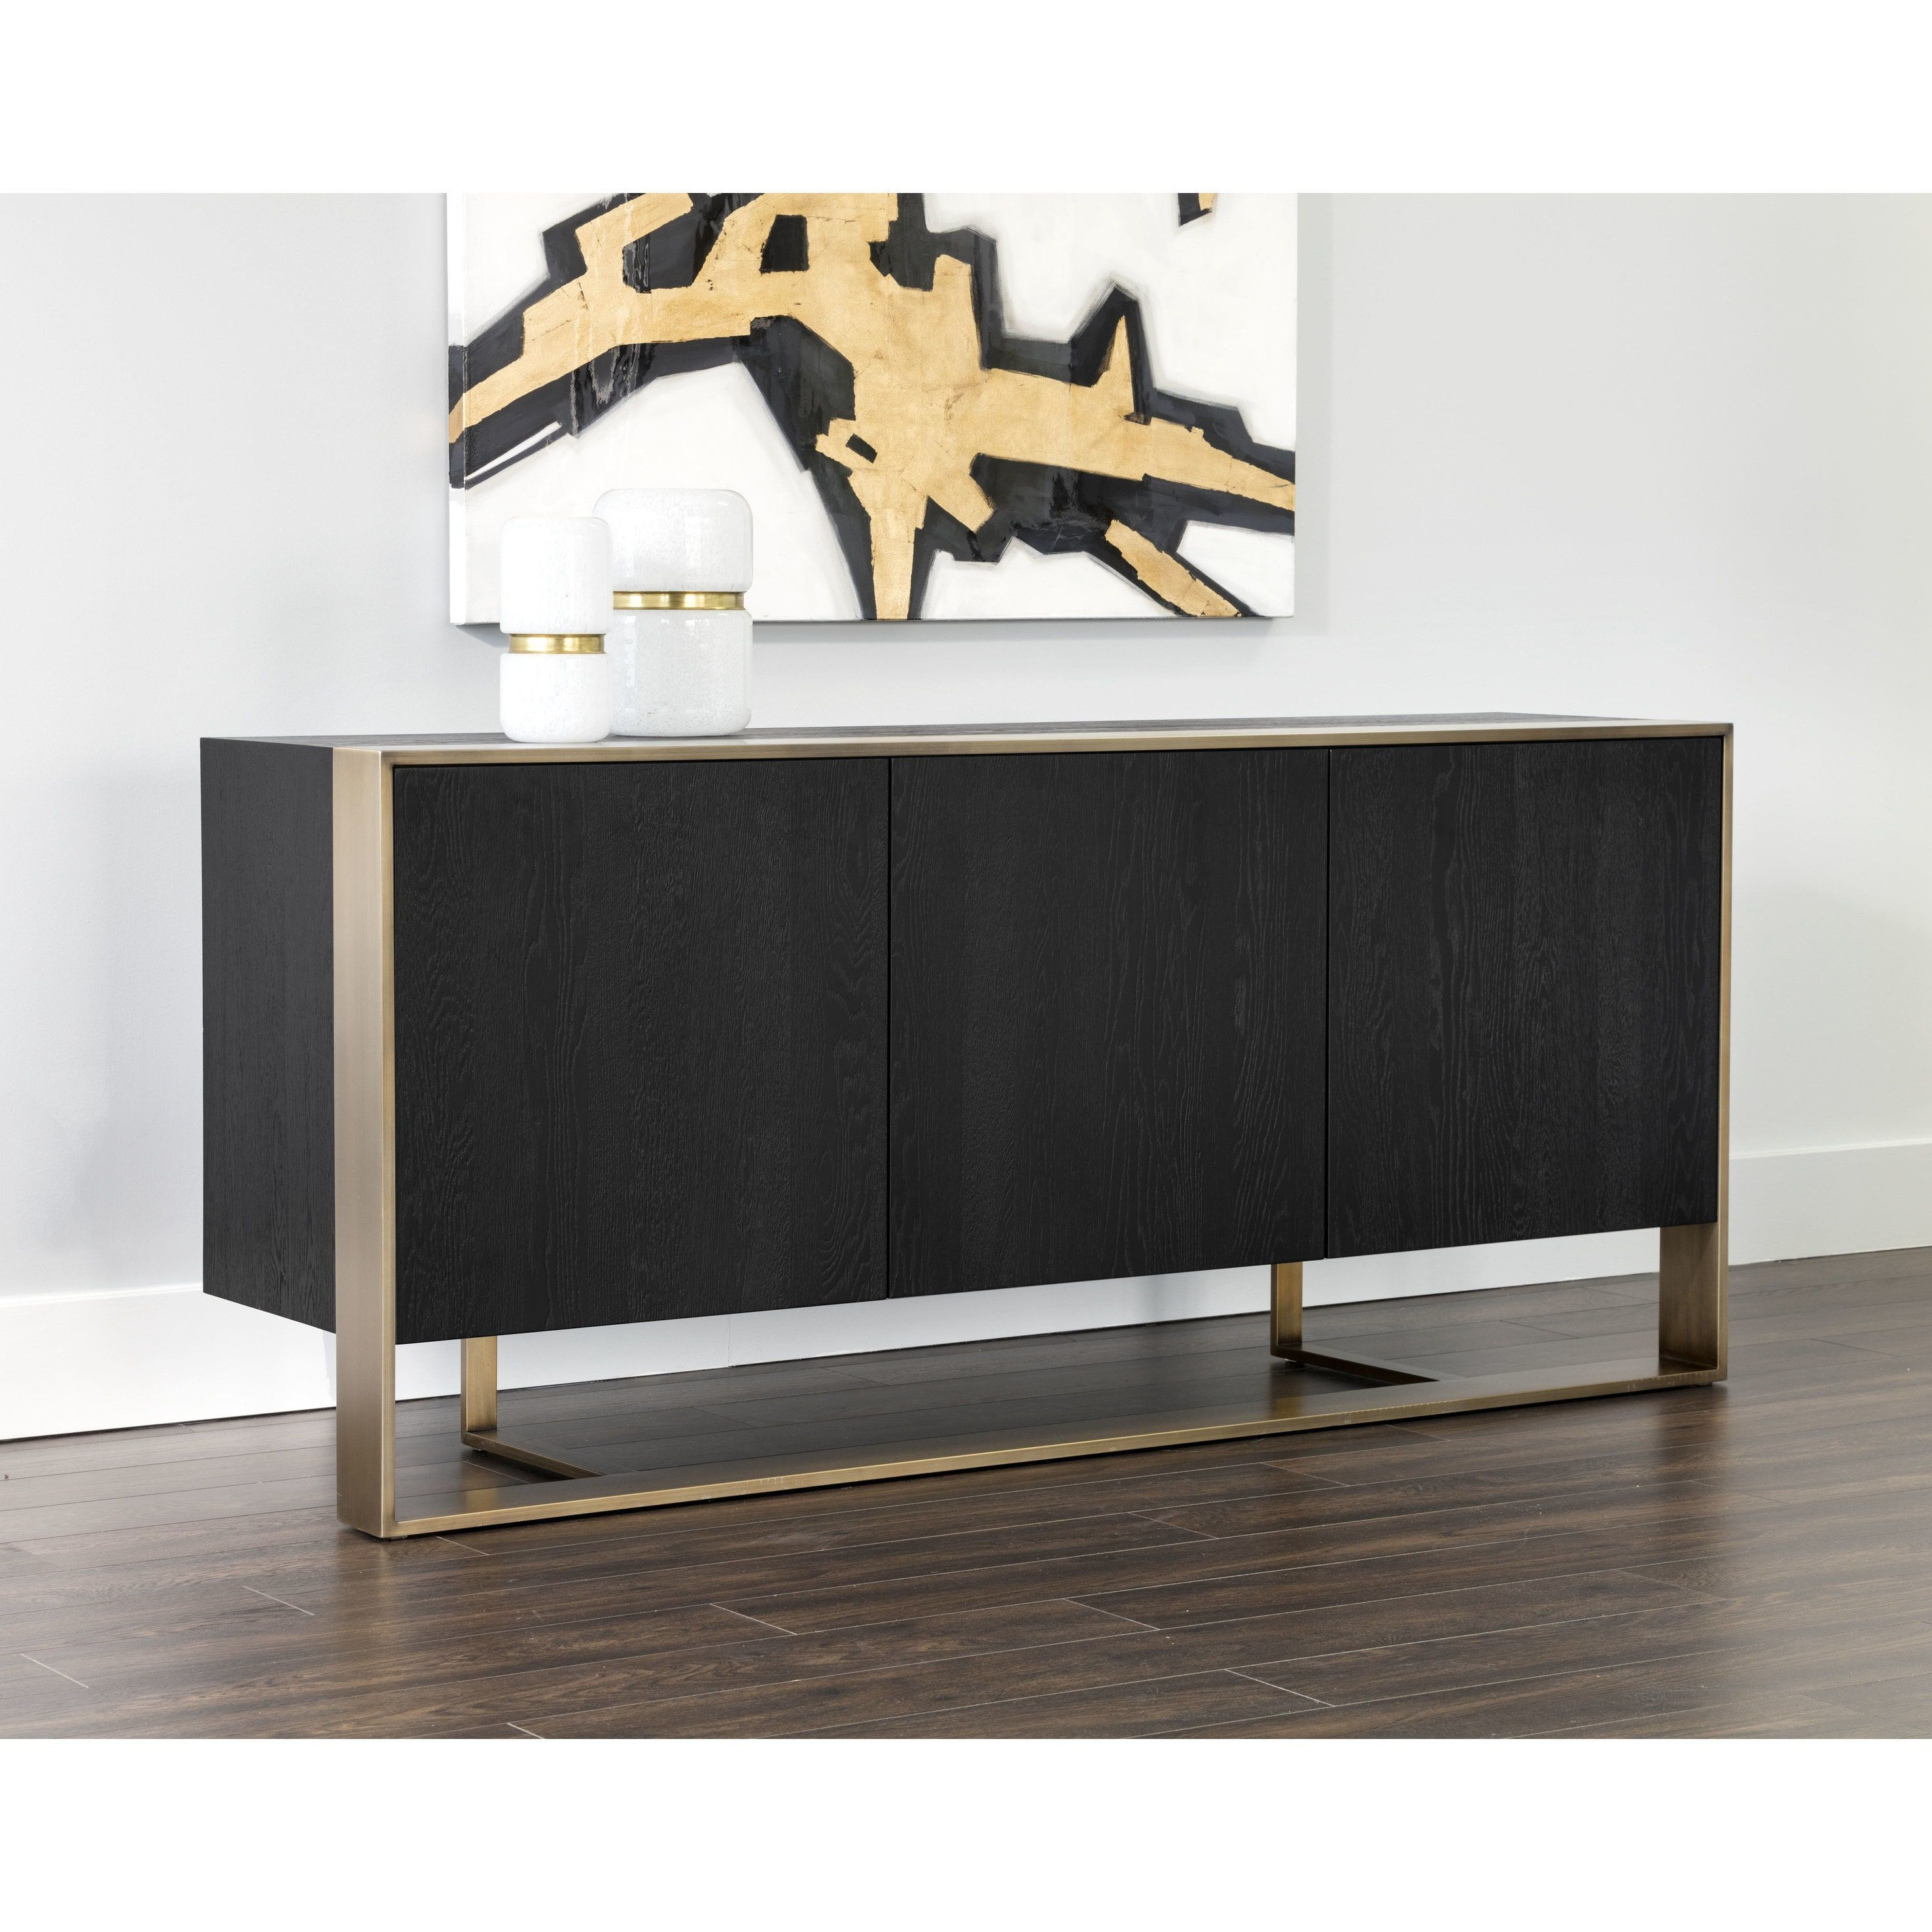 Rustic Black & Zebra Pine Sideboards Within Well Known Sunpan Dalton Black Wood Antique Brass Sideboard (Sideboard (View 15 of 20)